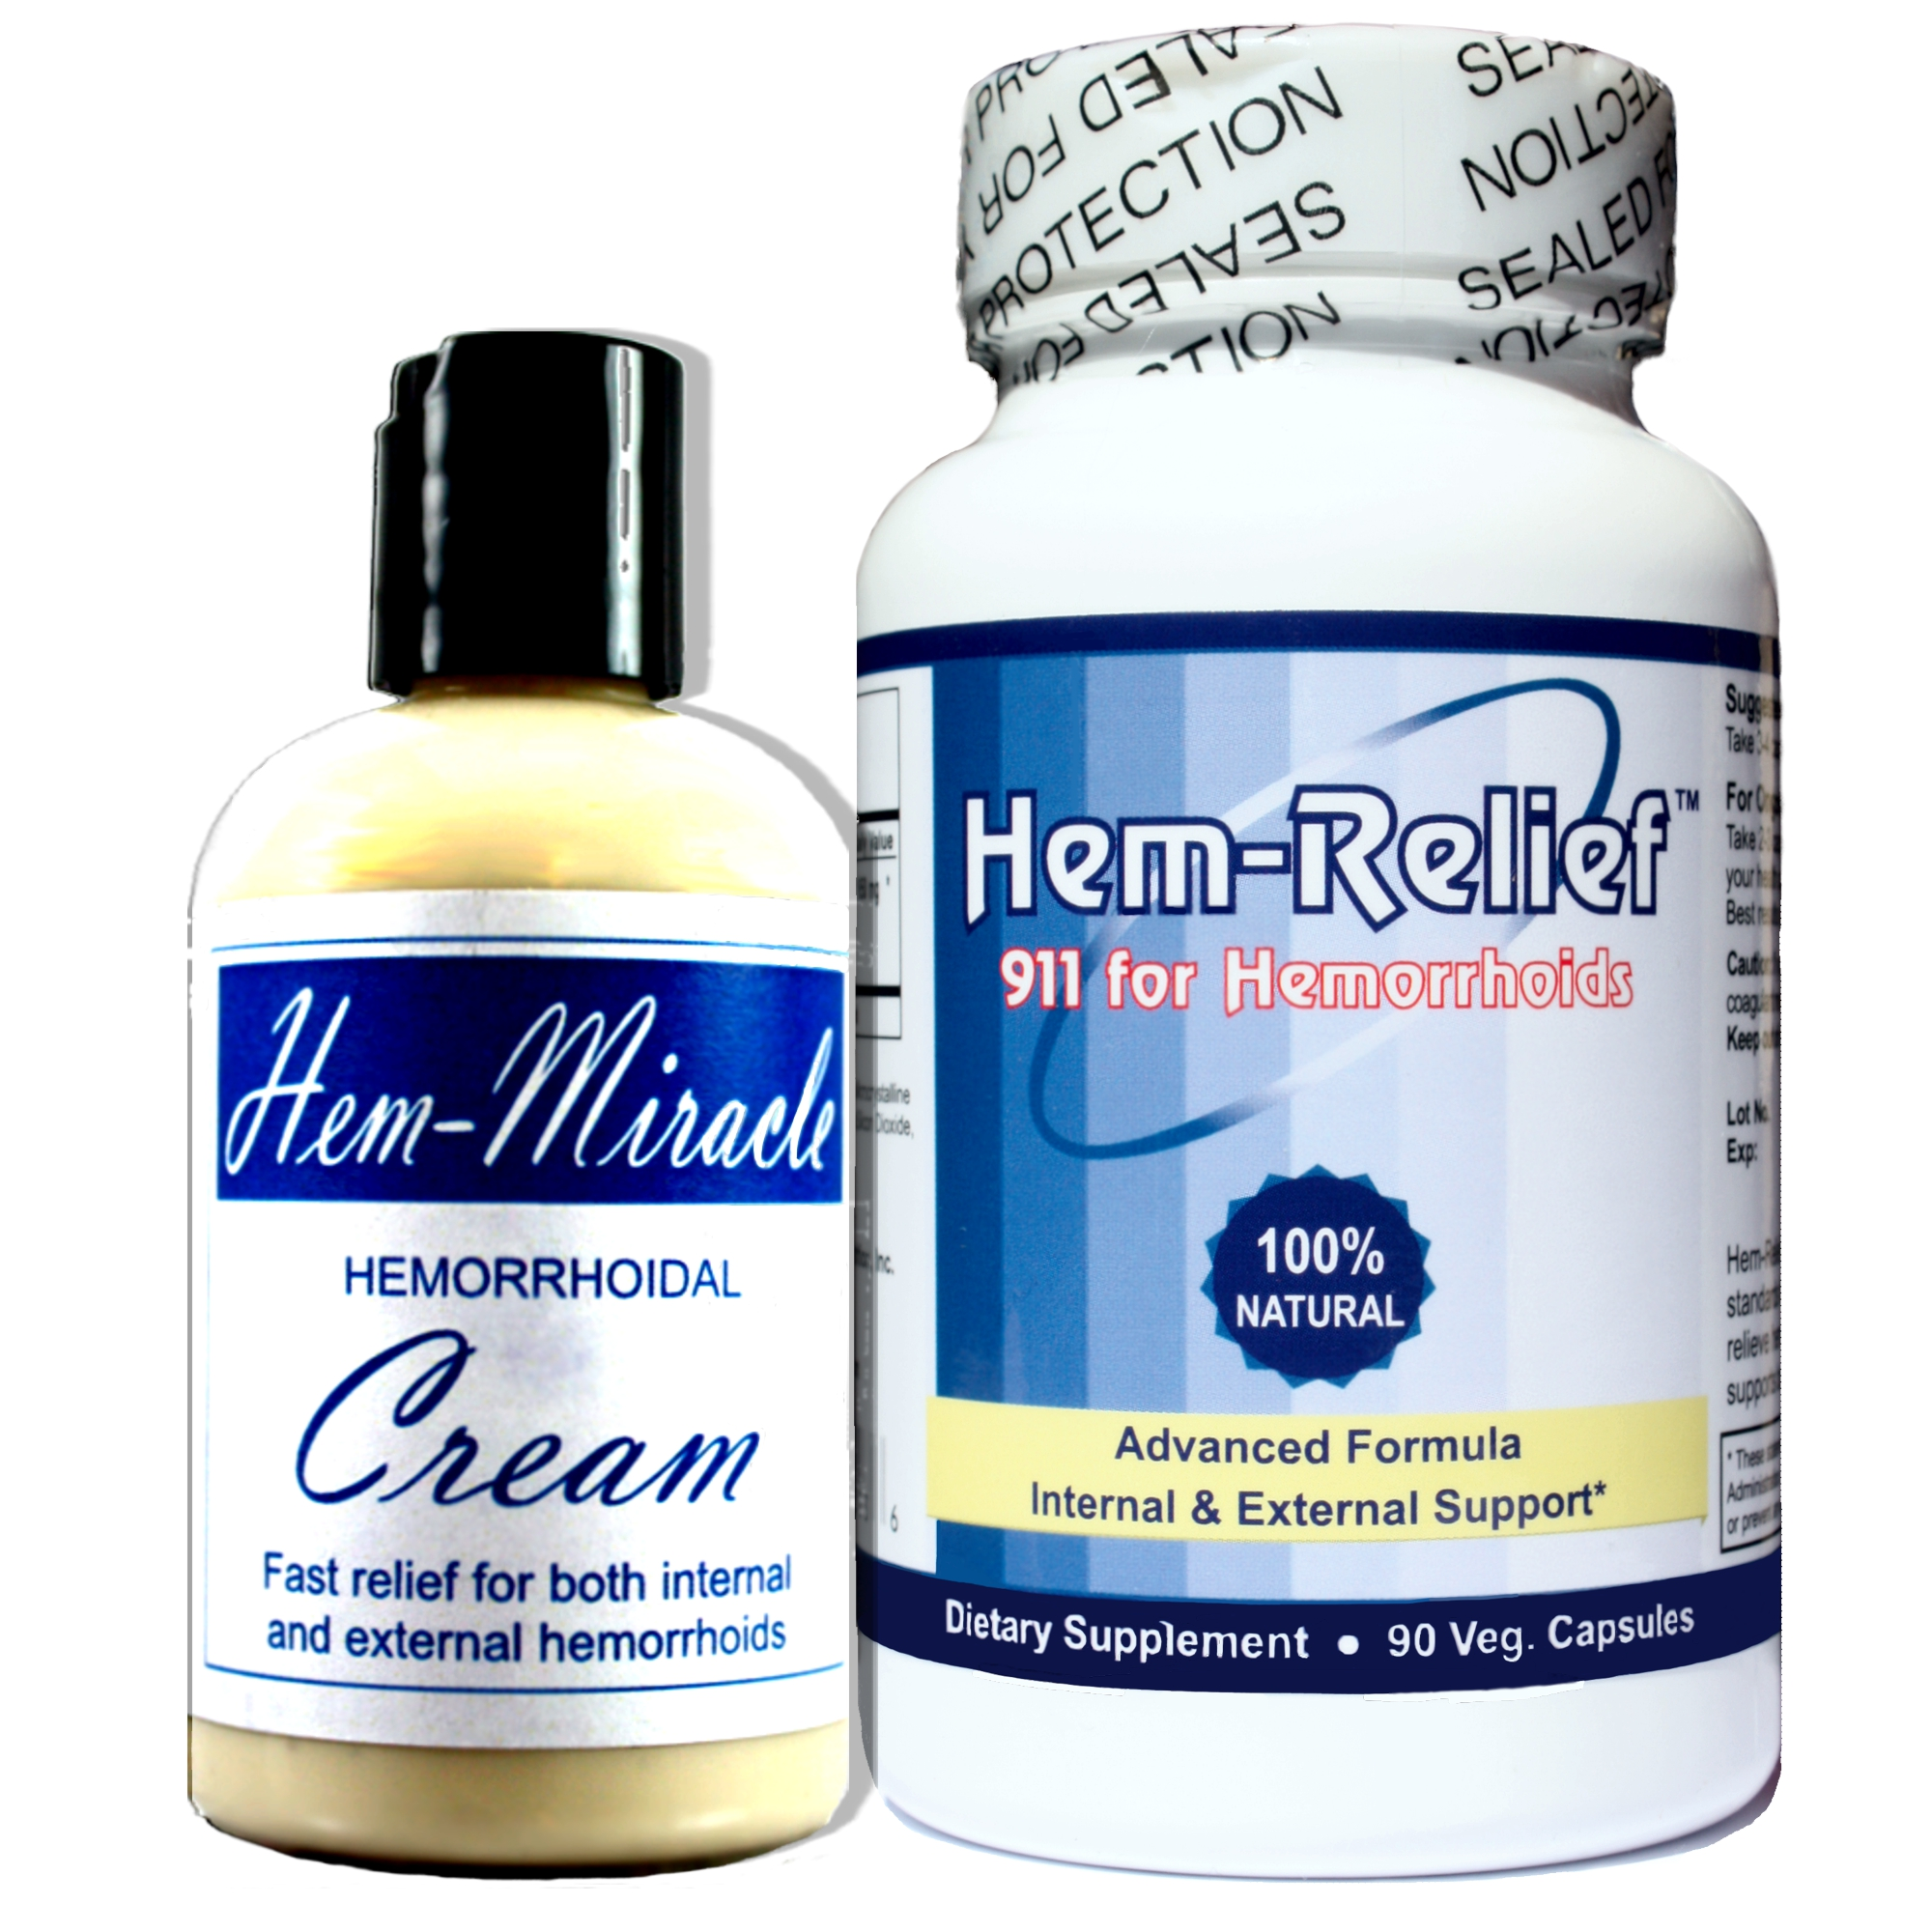 Hem Miracle and Hem-Relief